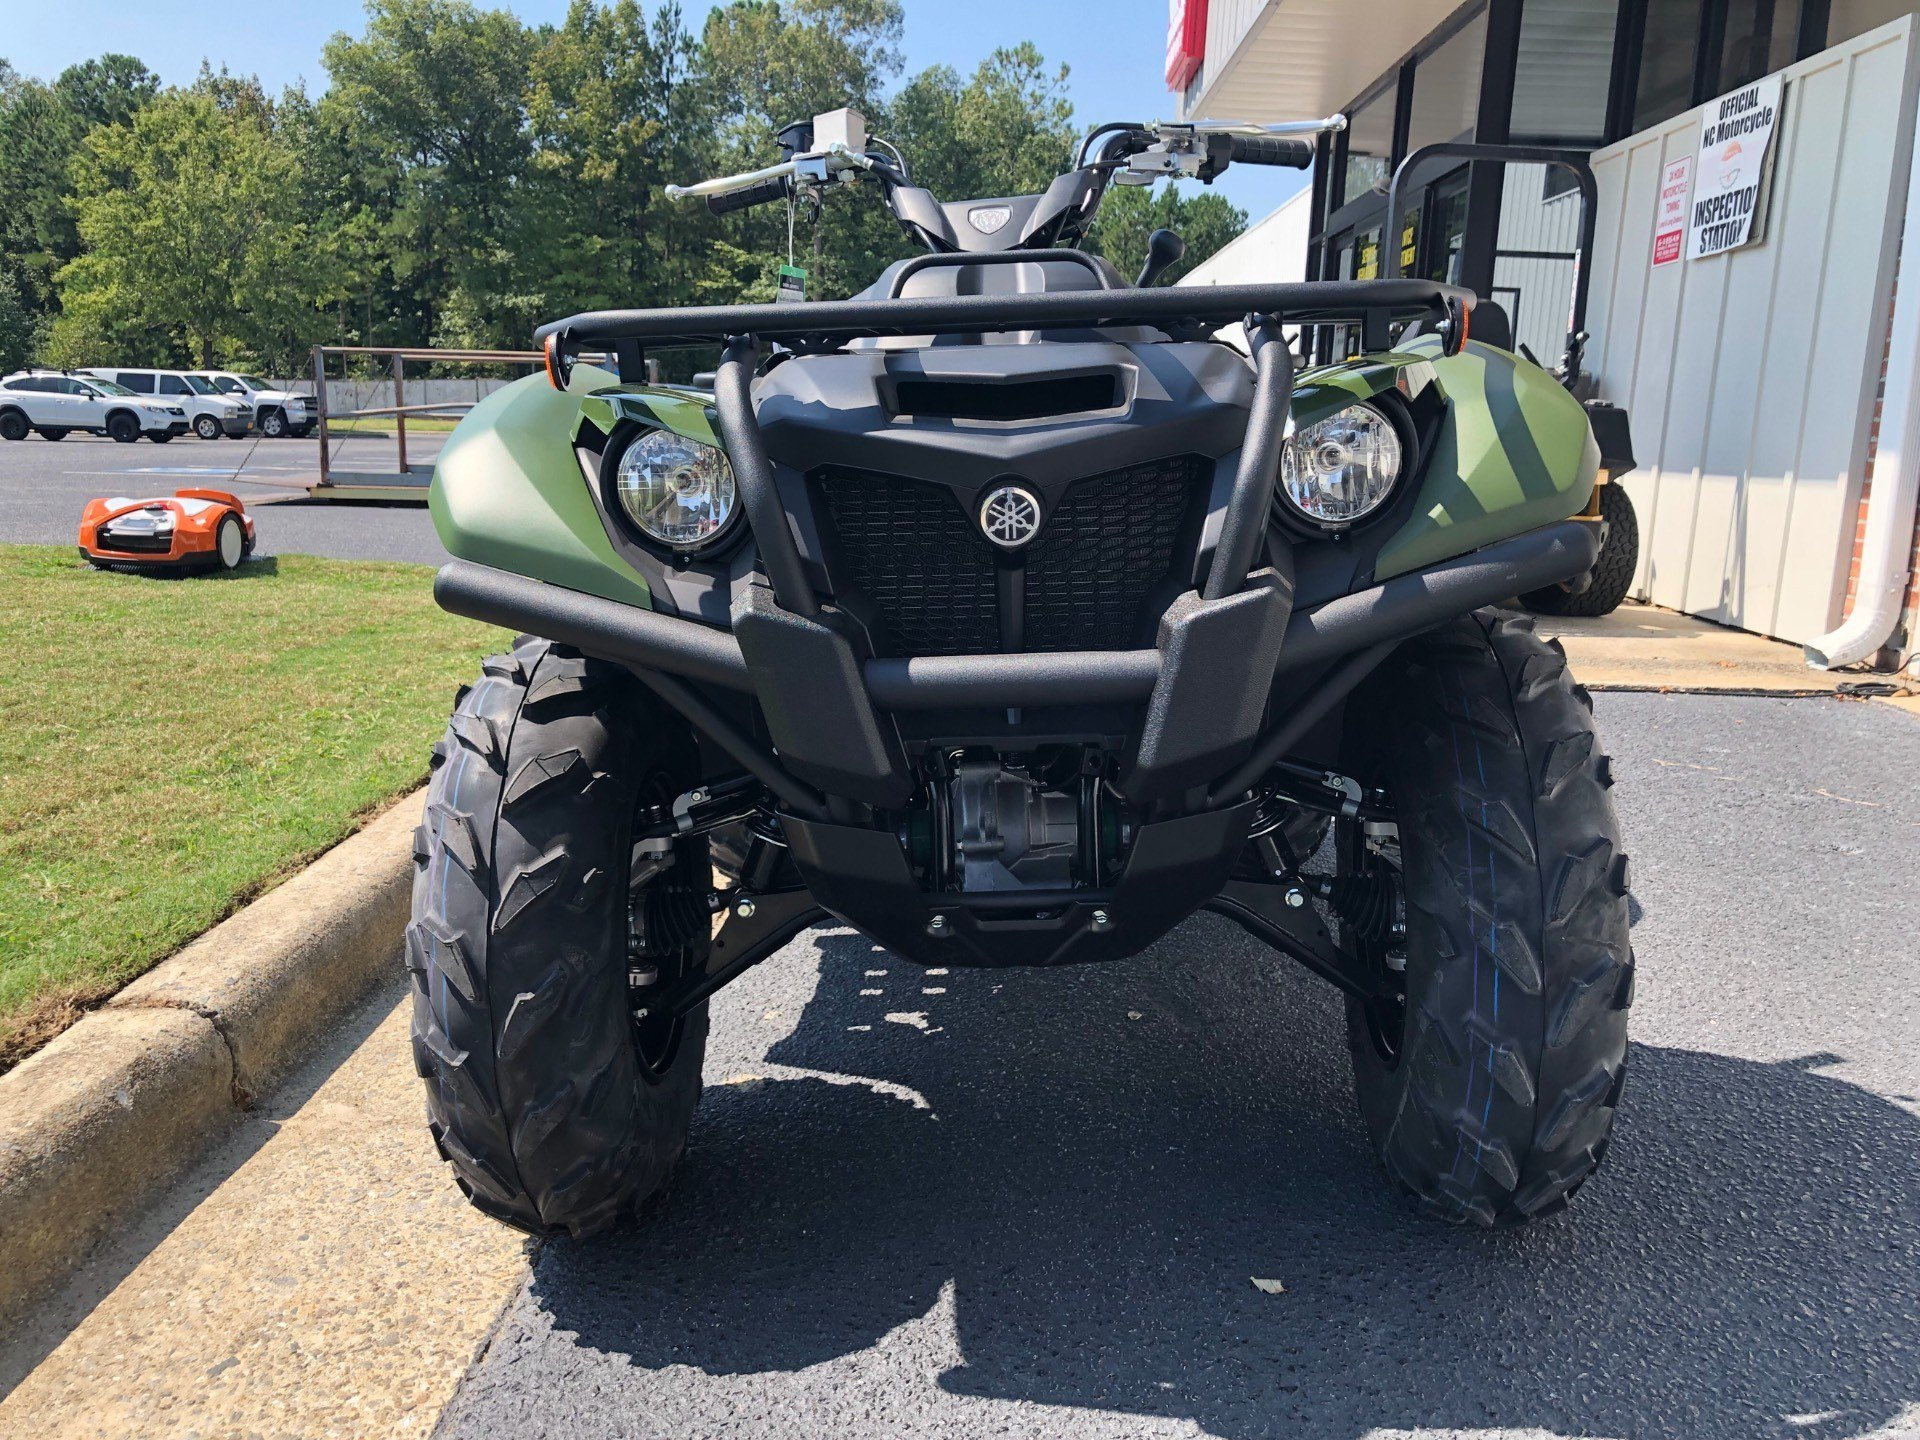 2020 Yamaha Kodiak 700 in Greenville, North Carolina - Photo 4